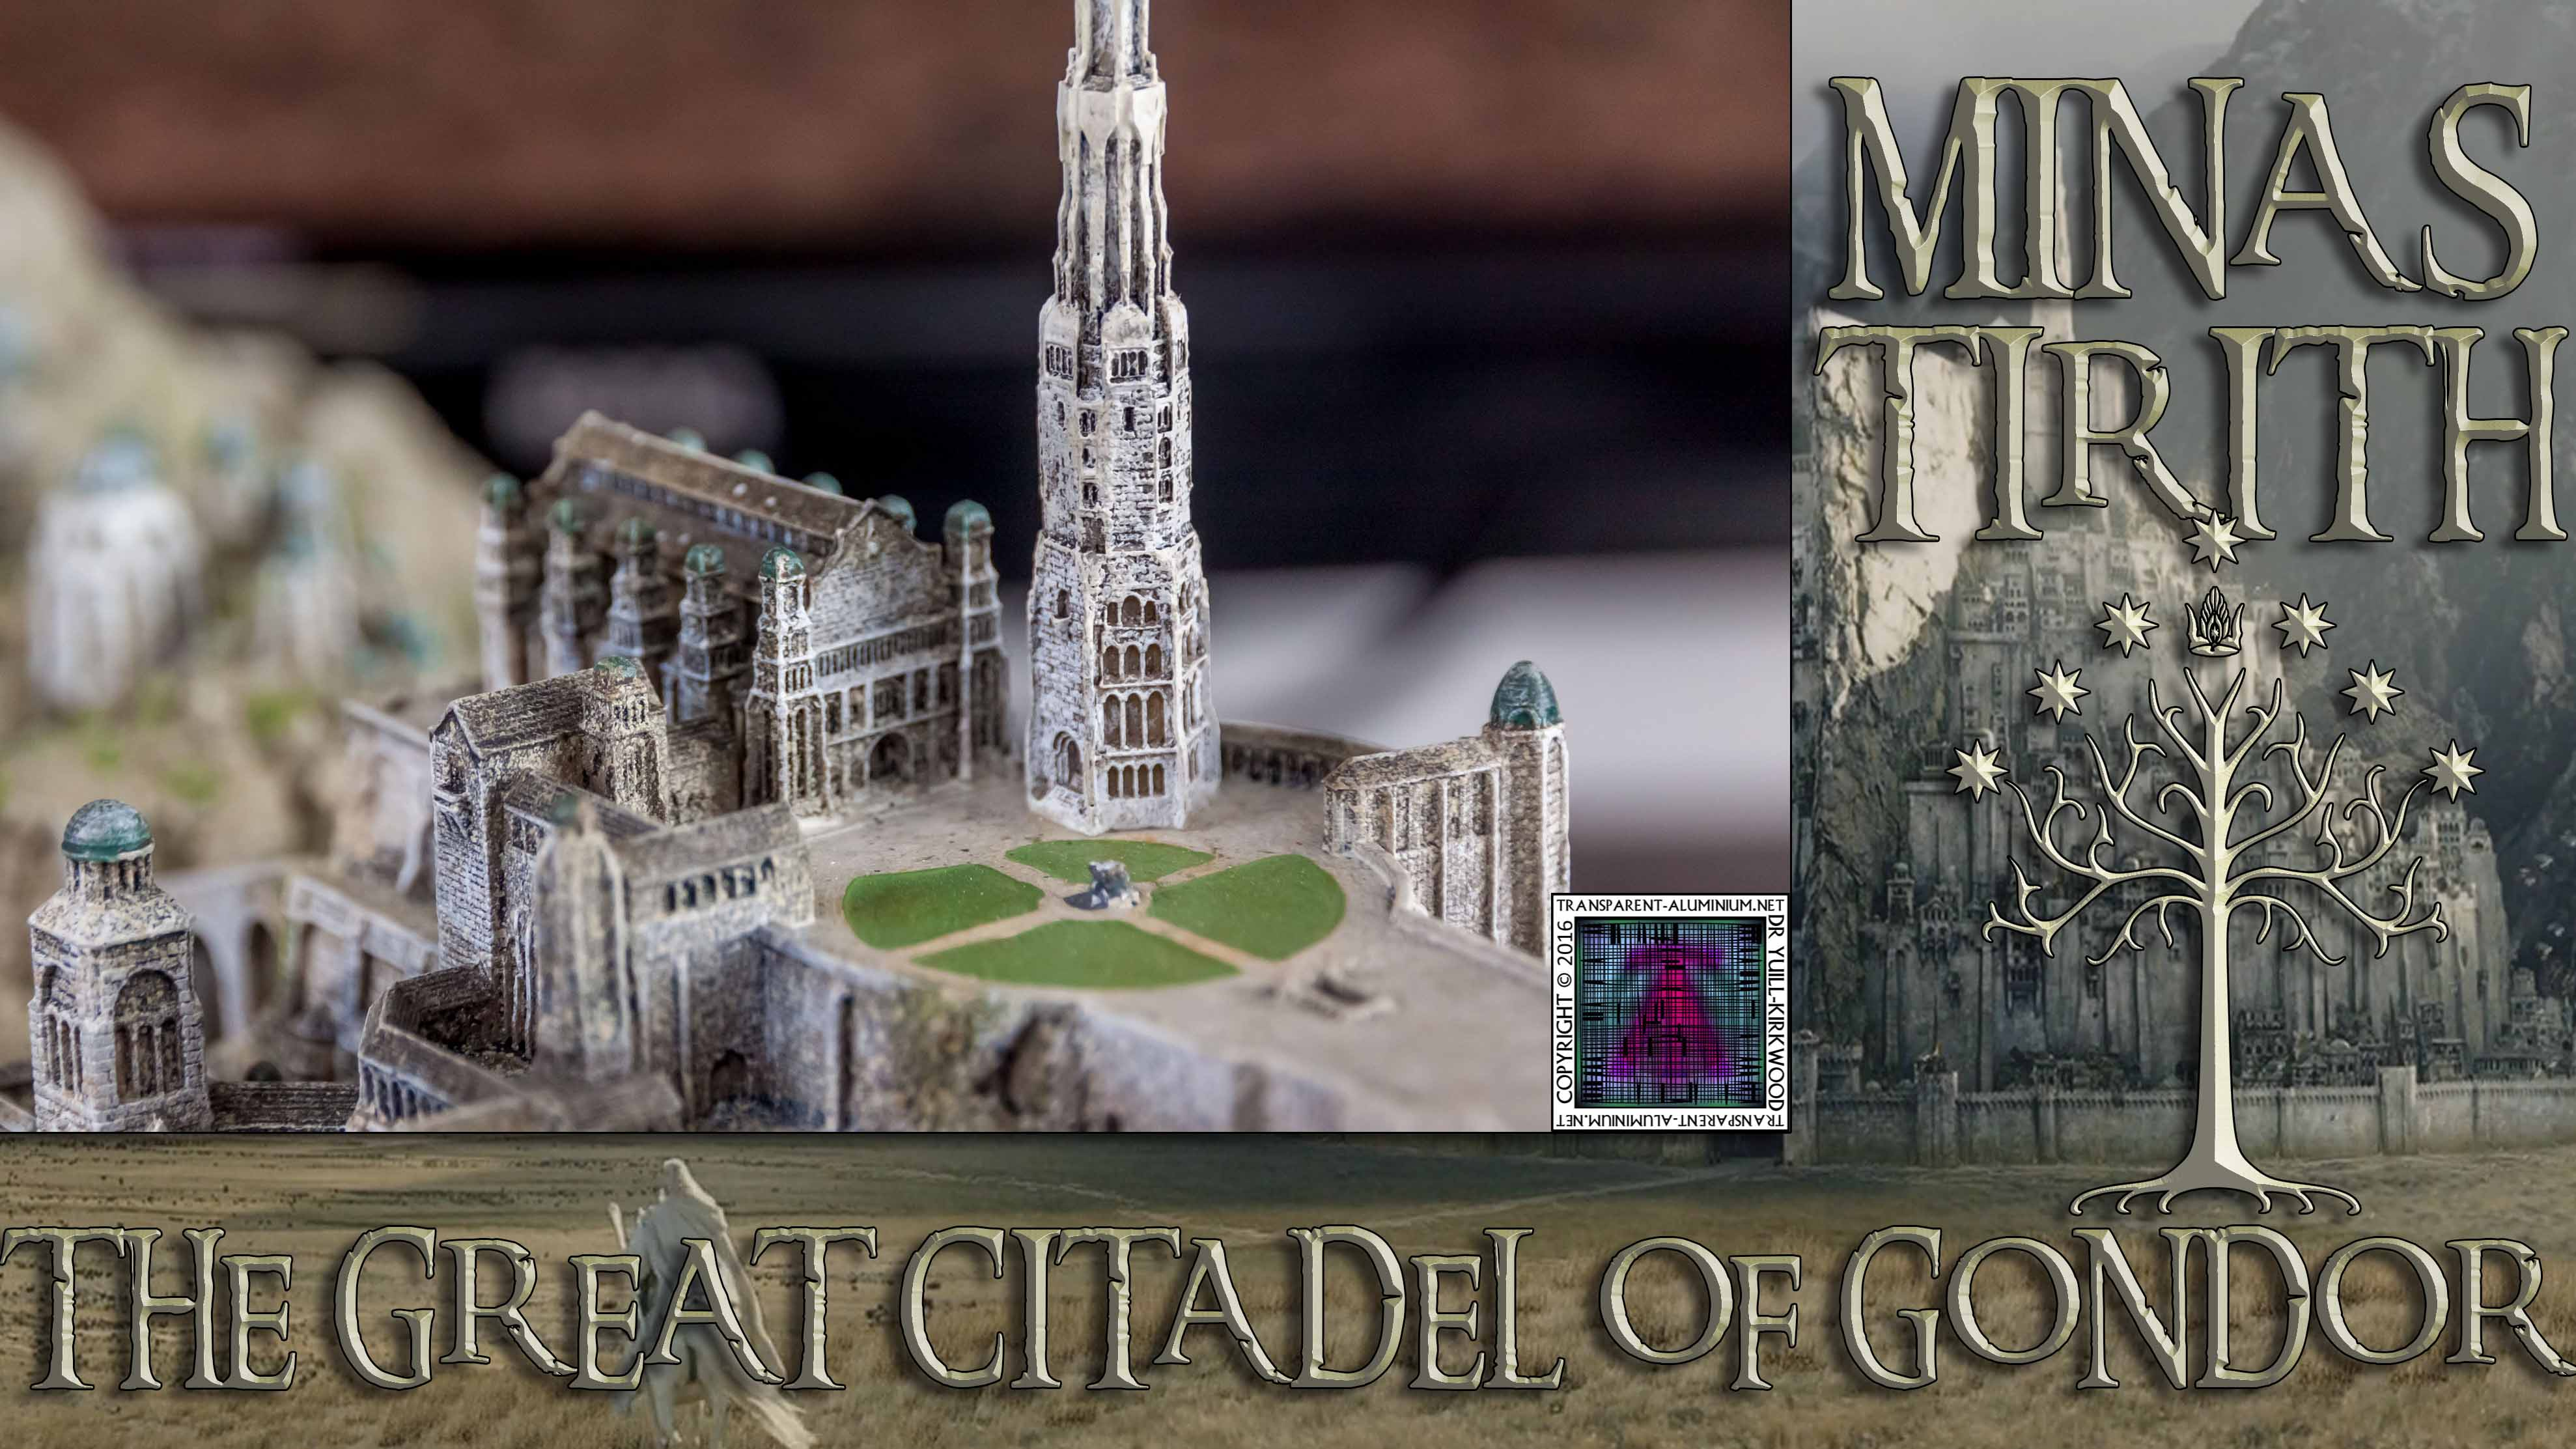 Minas Tirith The Great Citadel Of Gondor